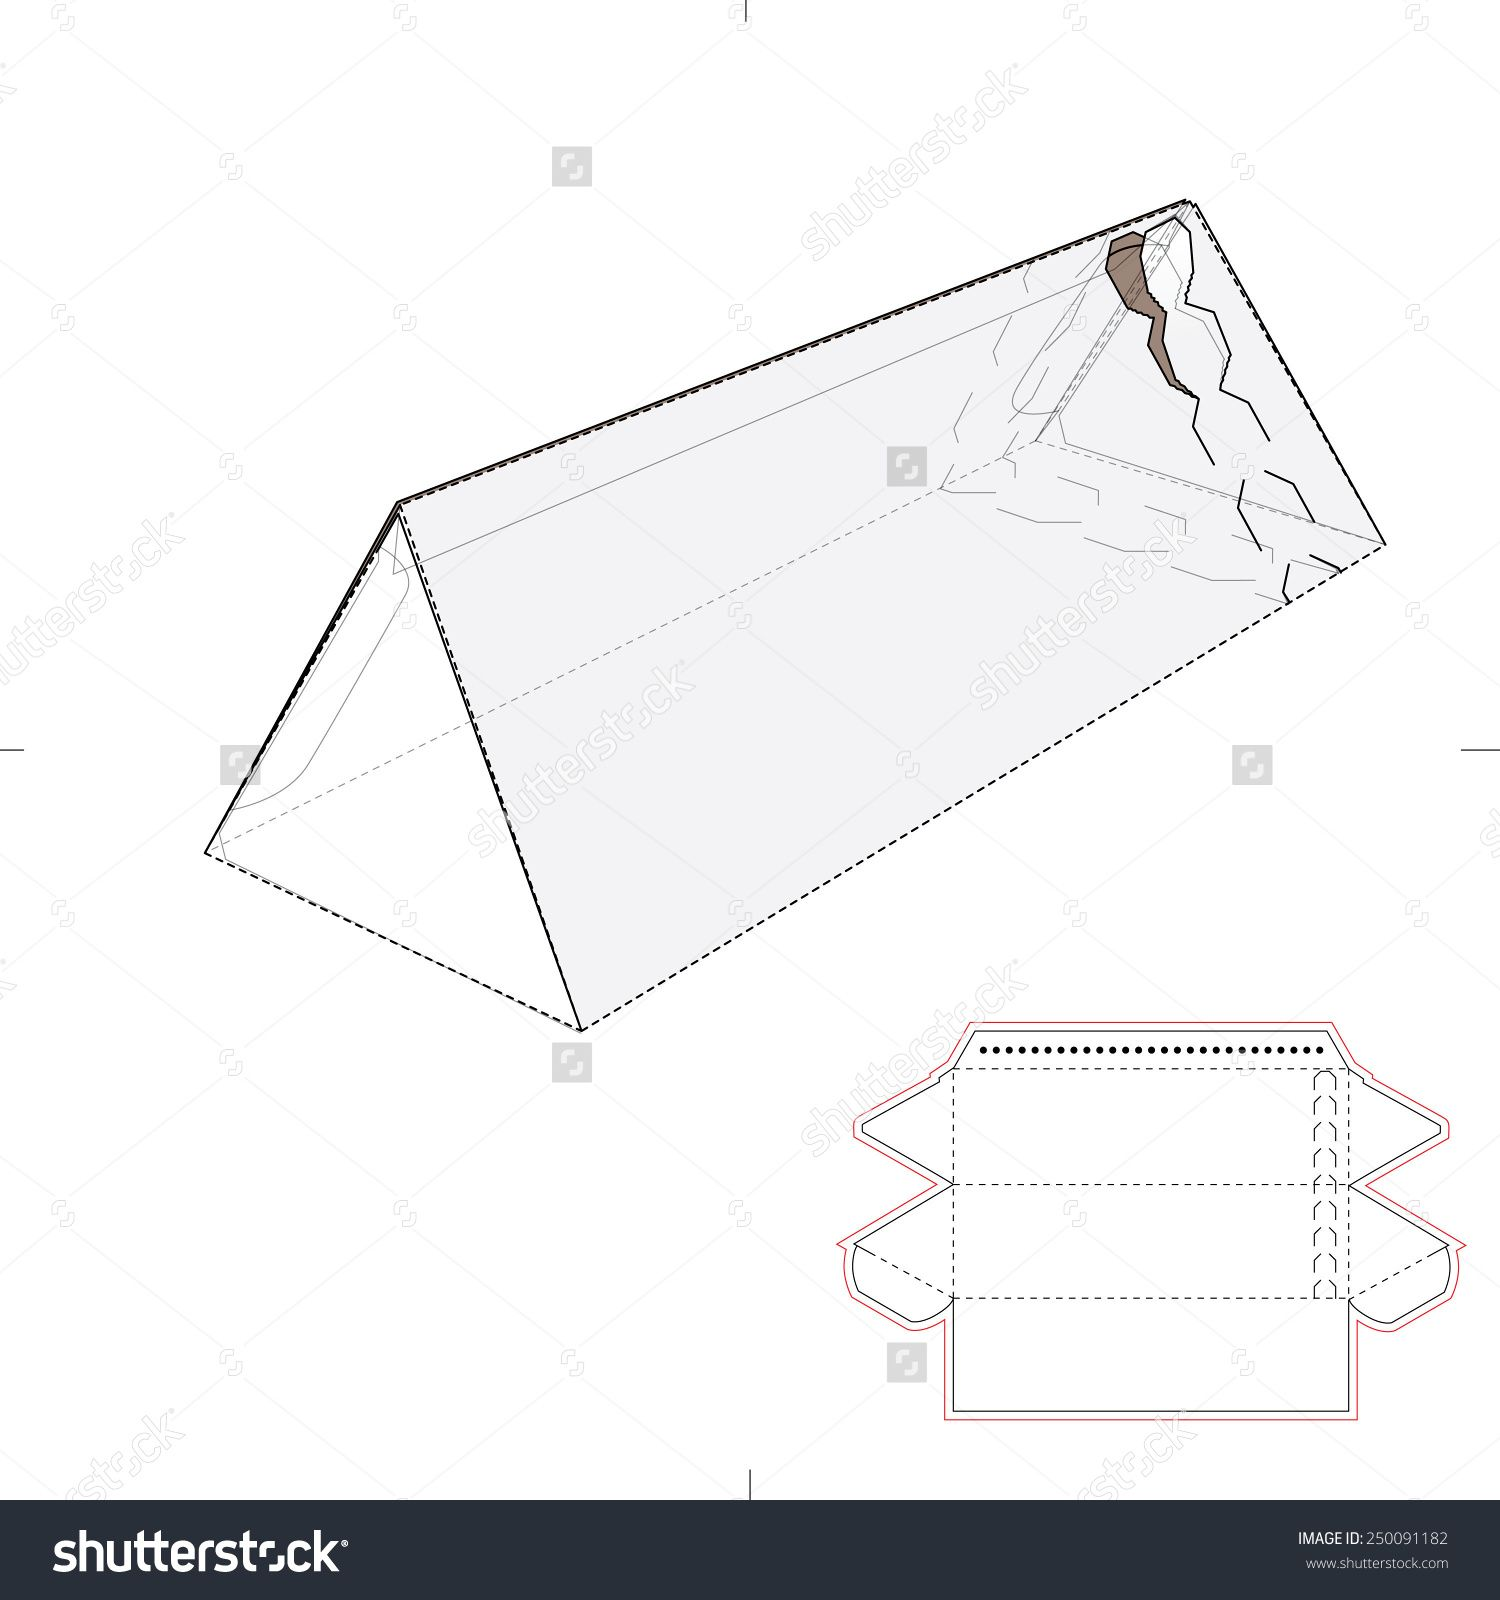 Triangular Tube Box With Zipper Seal And Die Cut Template Stock Vector Illustration 250091182 Shutterstock